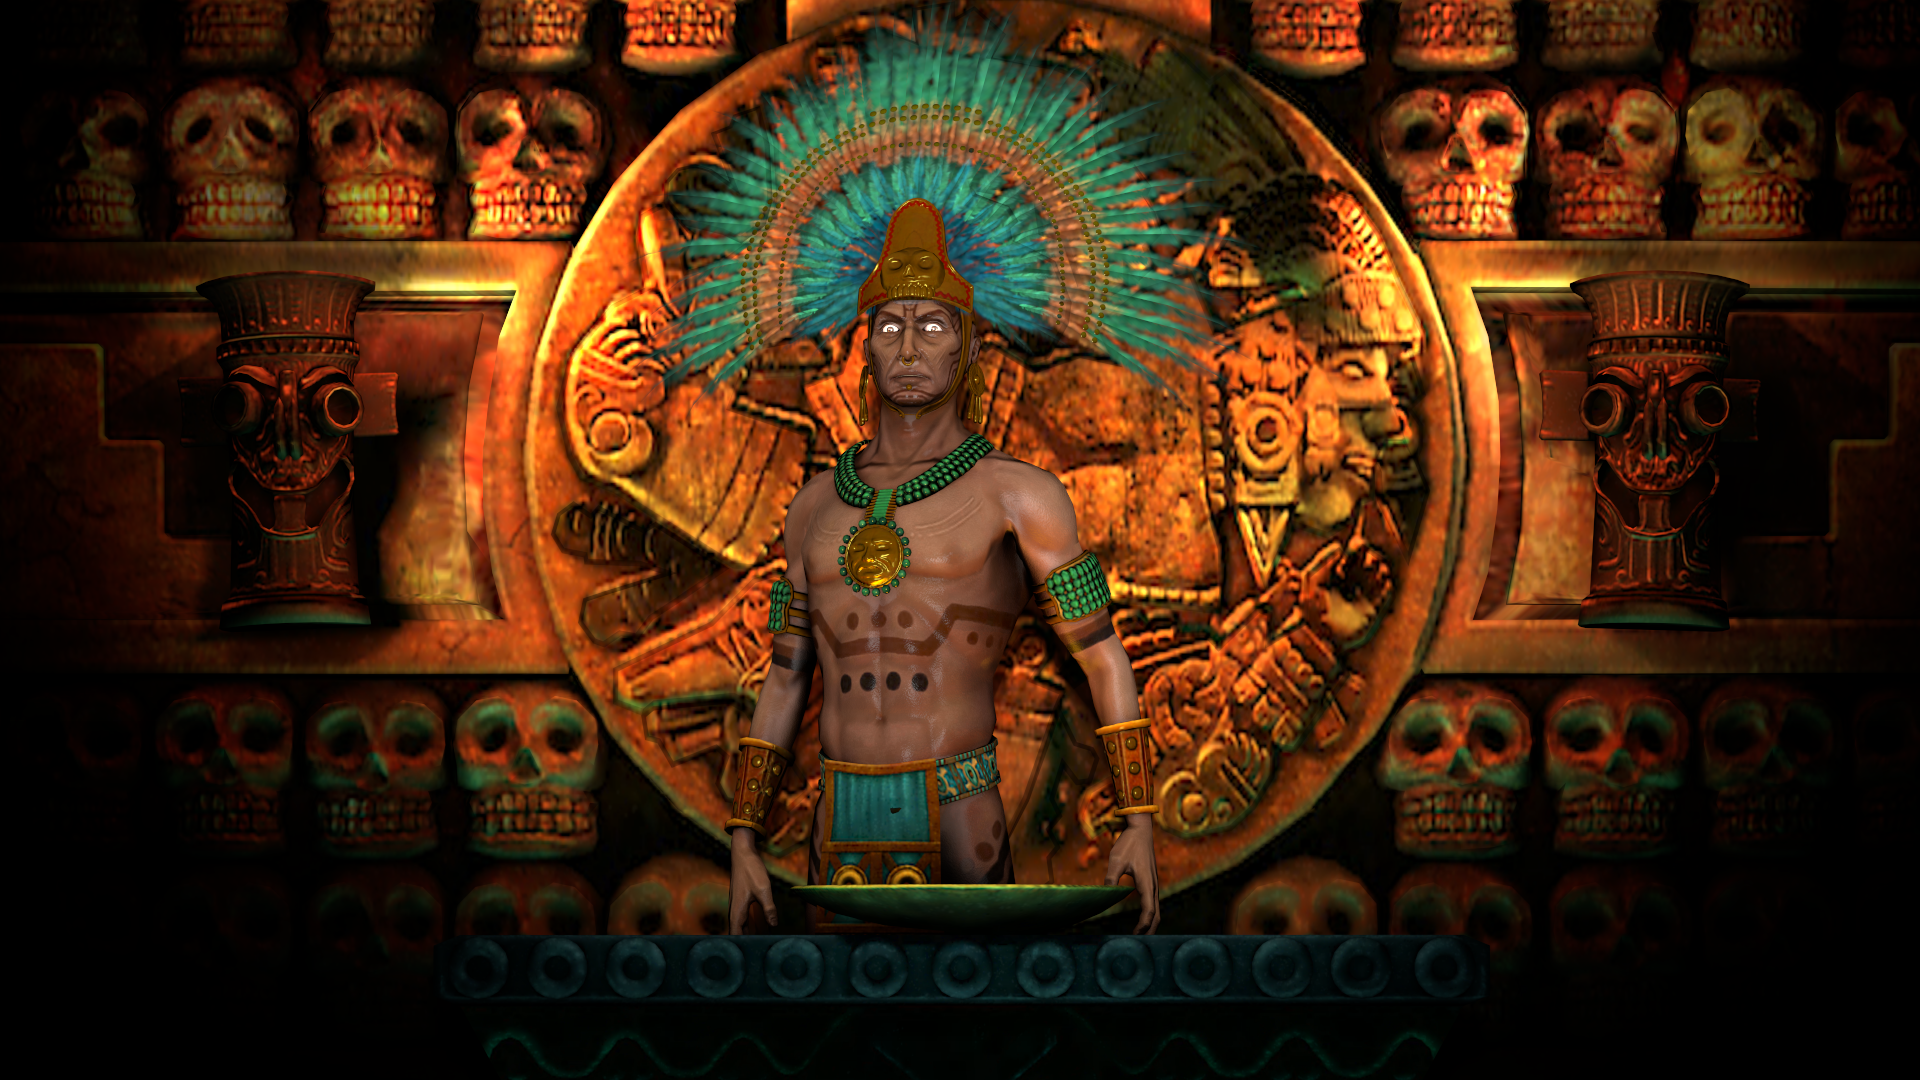 an analysis of the history and social structure of the aztec civilization Find out how the aztec social classes were  history and the analysis of  egypt blue prints bible civilization history africa social science.